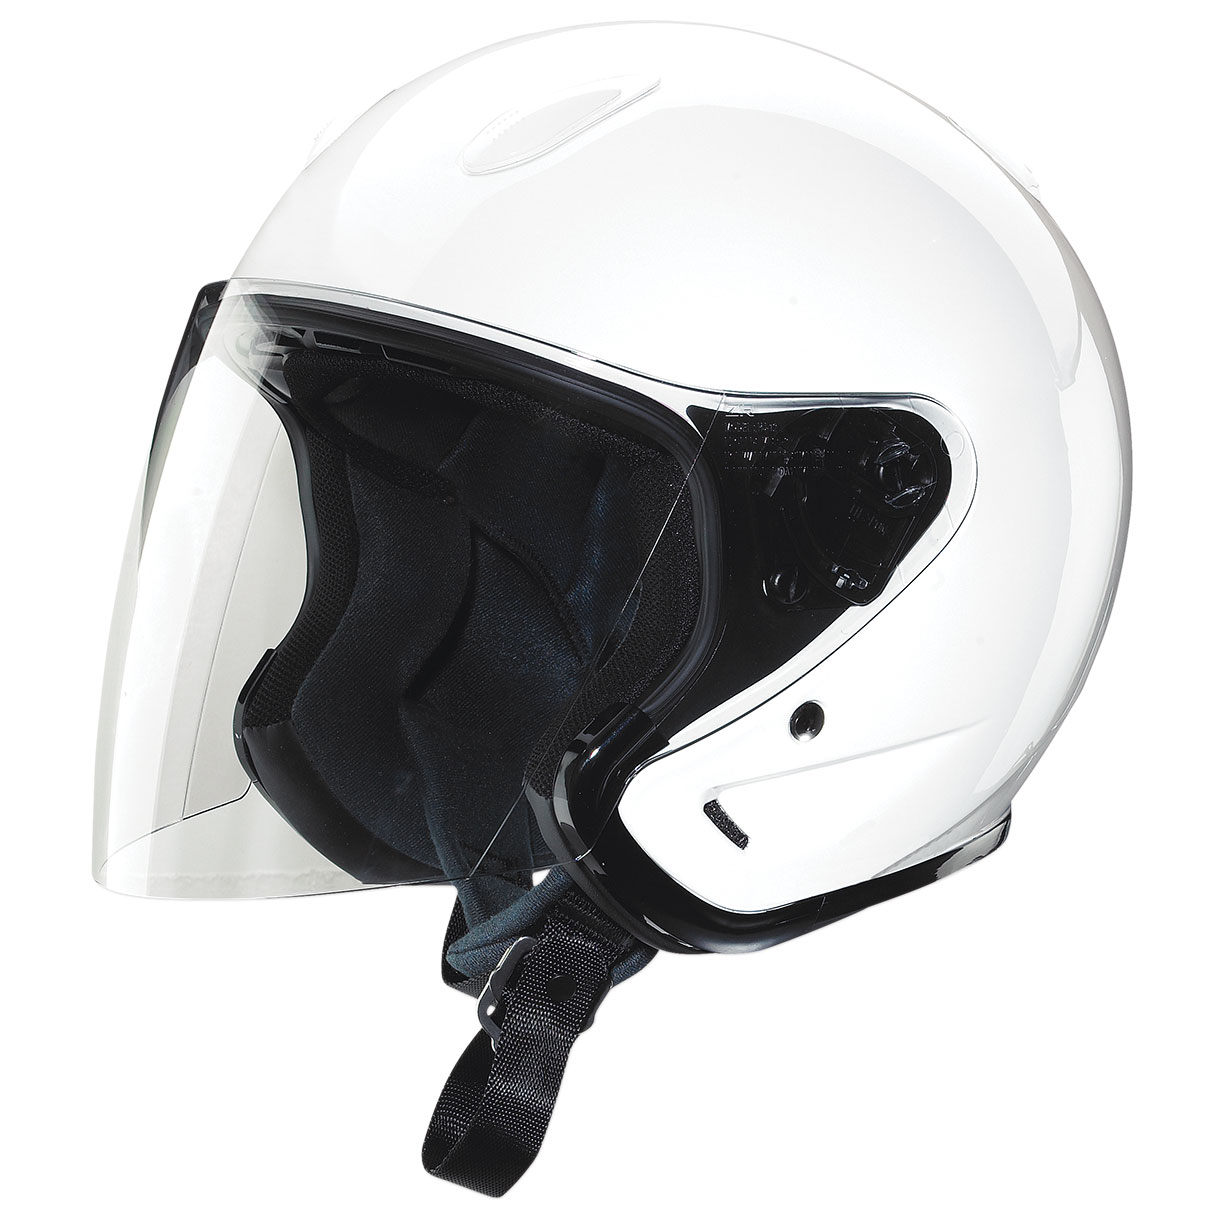 Z1R Ace White Open Face Helmet